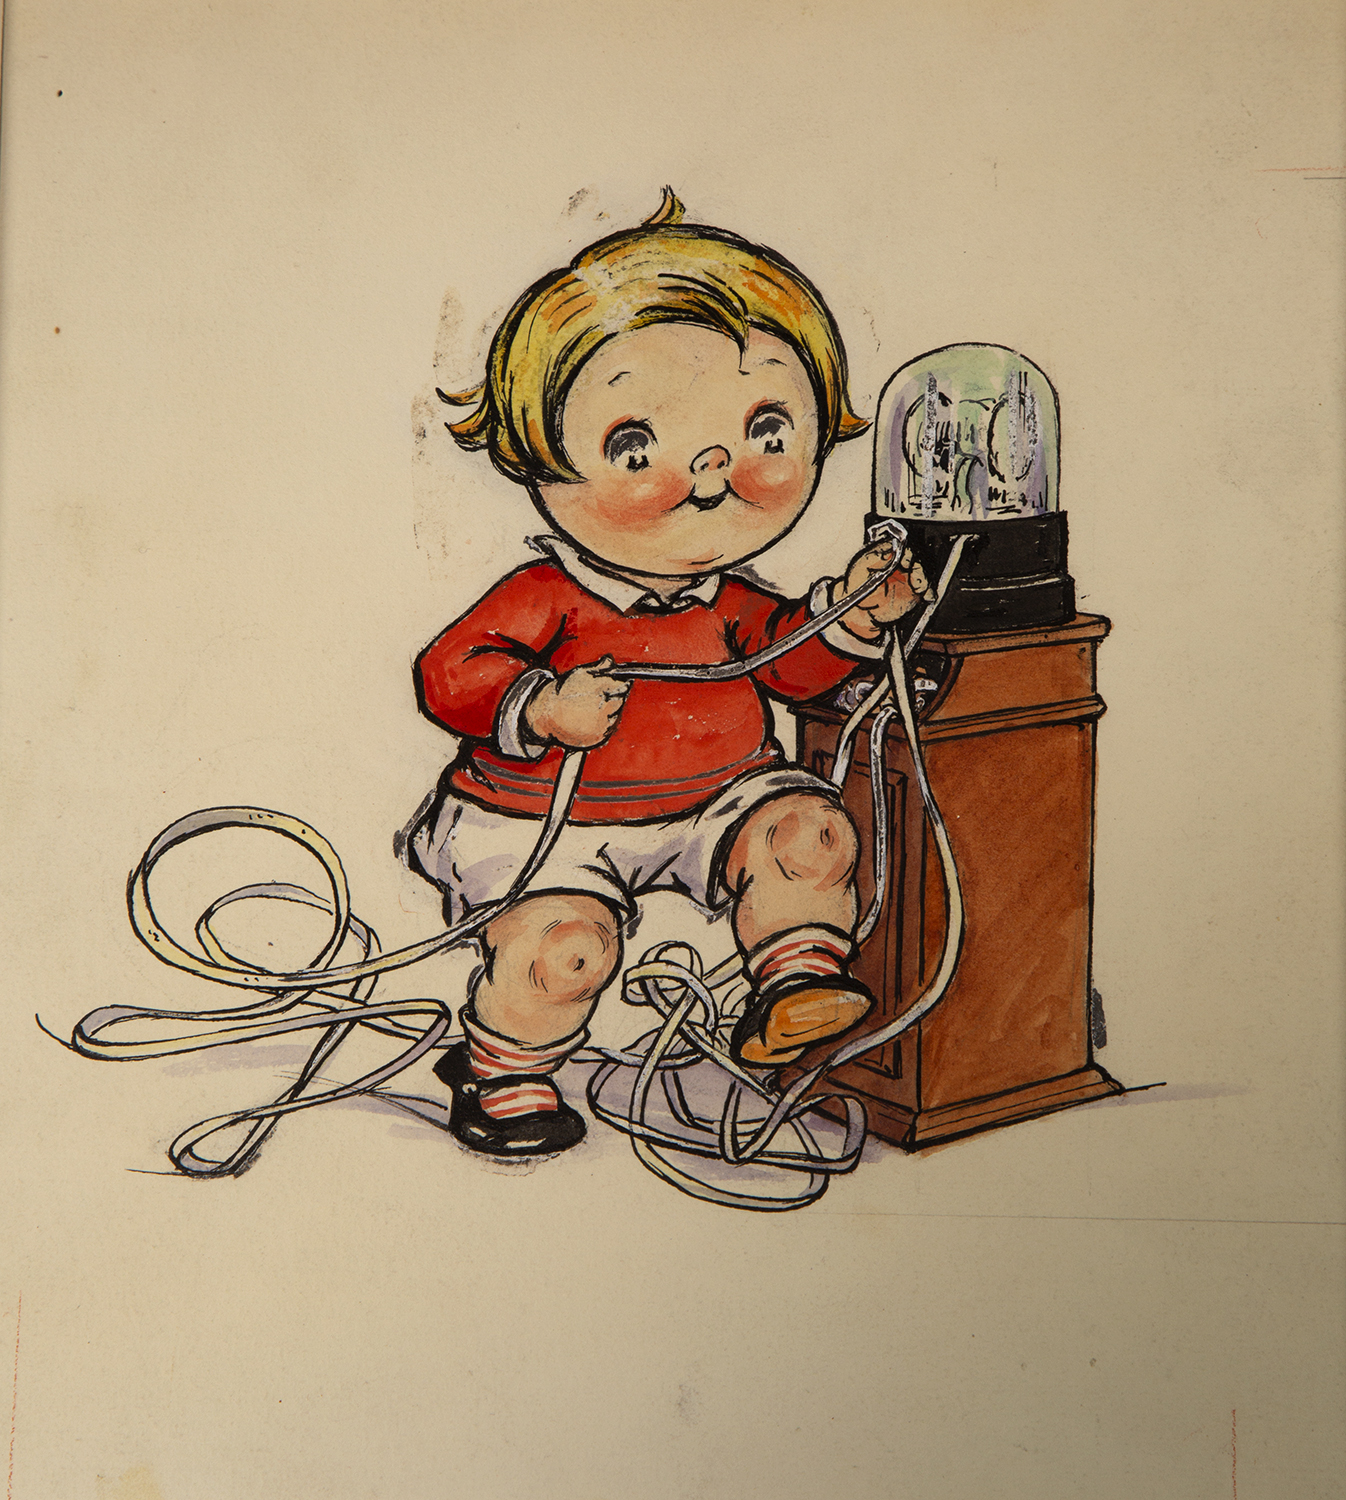 A Campbell's Soup Kid reads the latest stock news from a glass domed stock ticker machine.